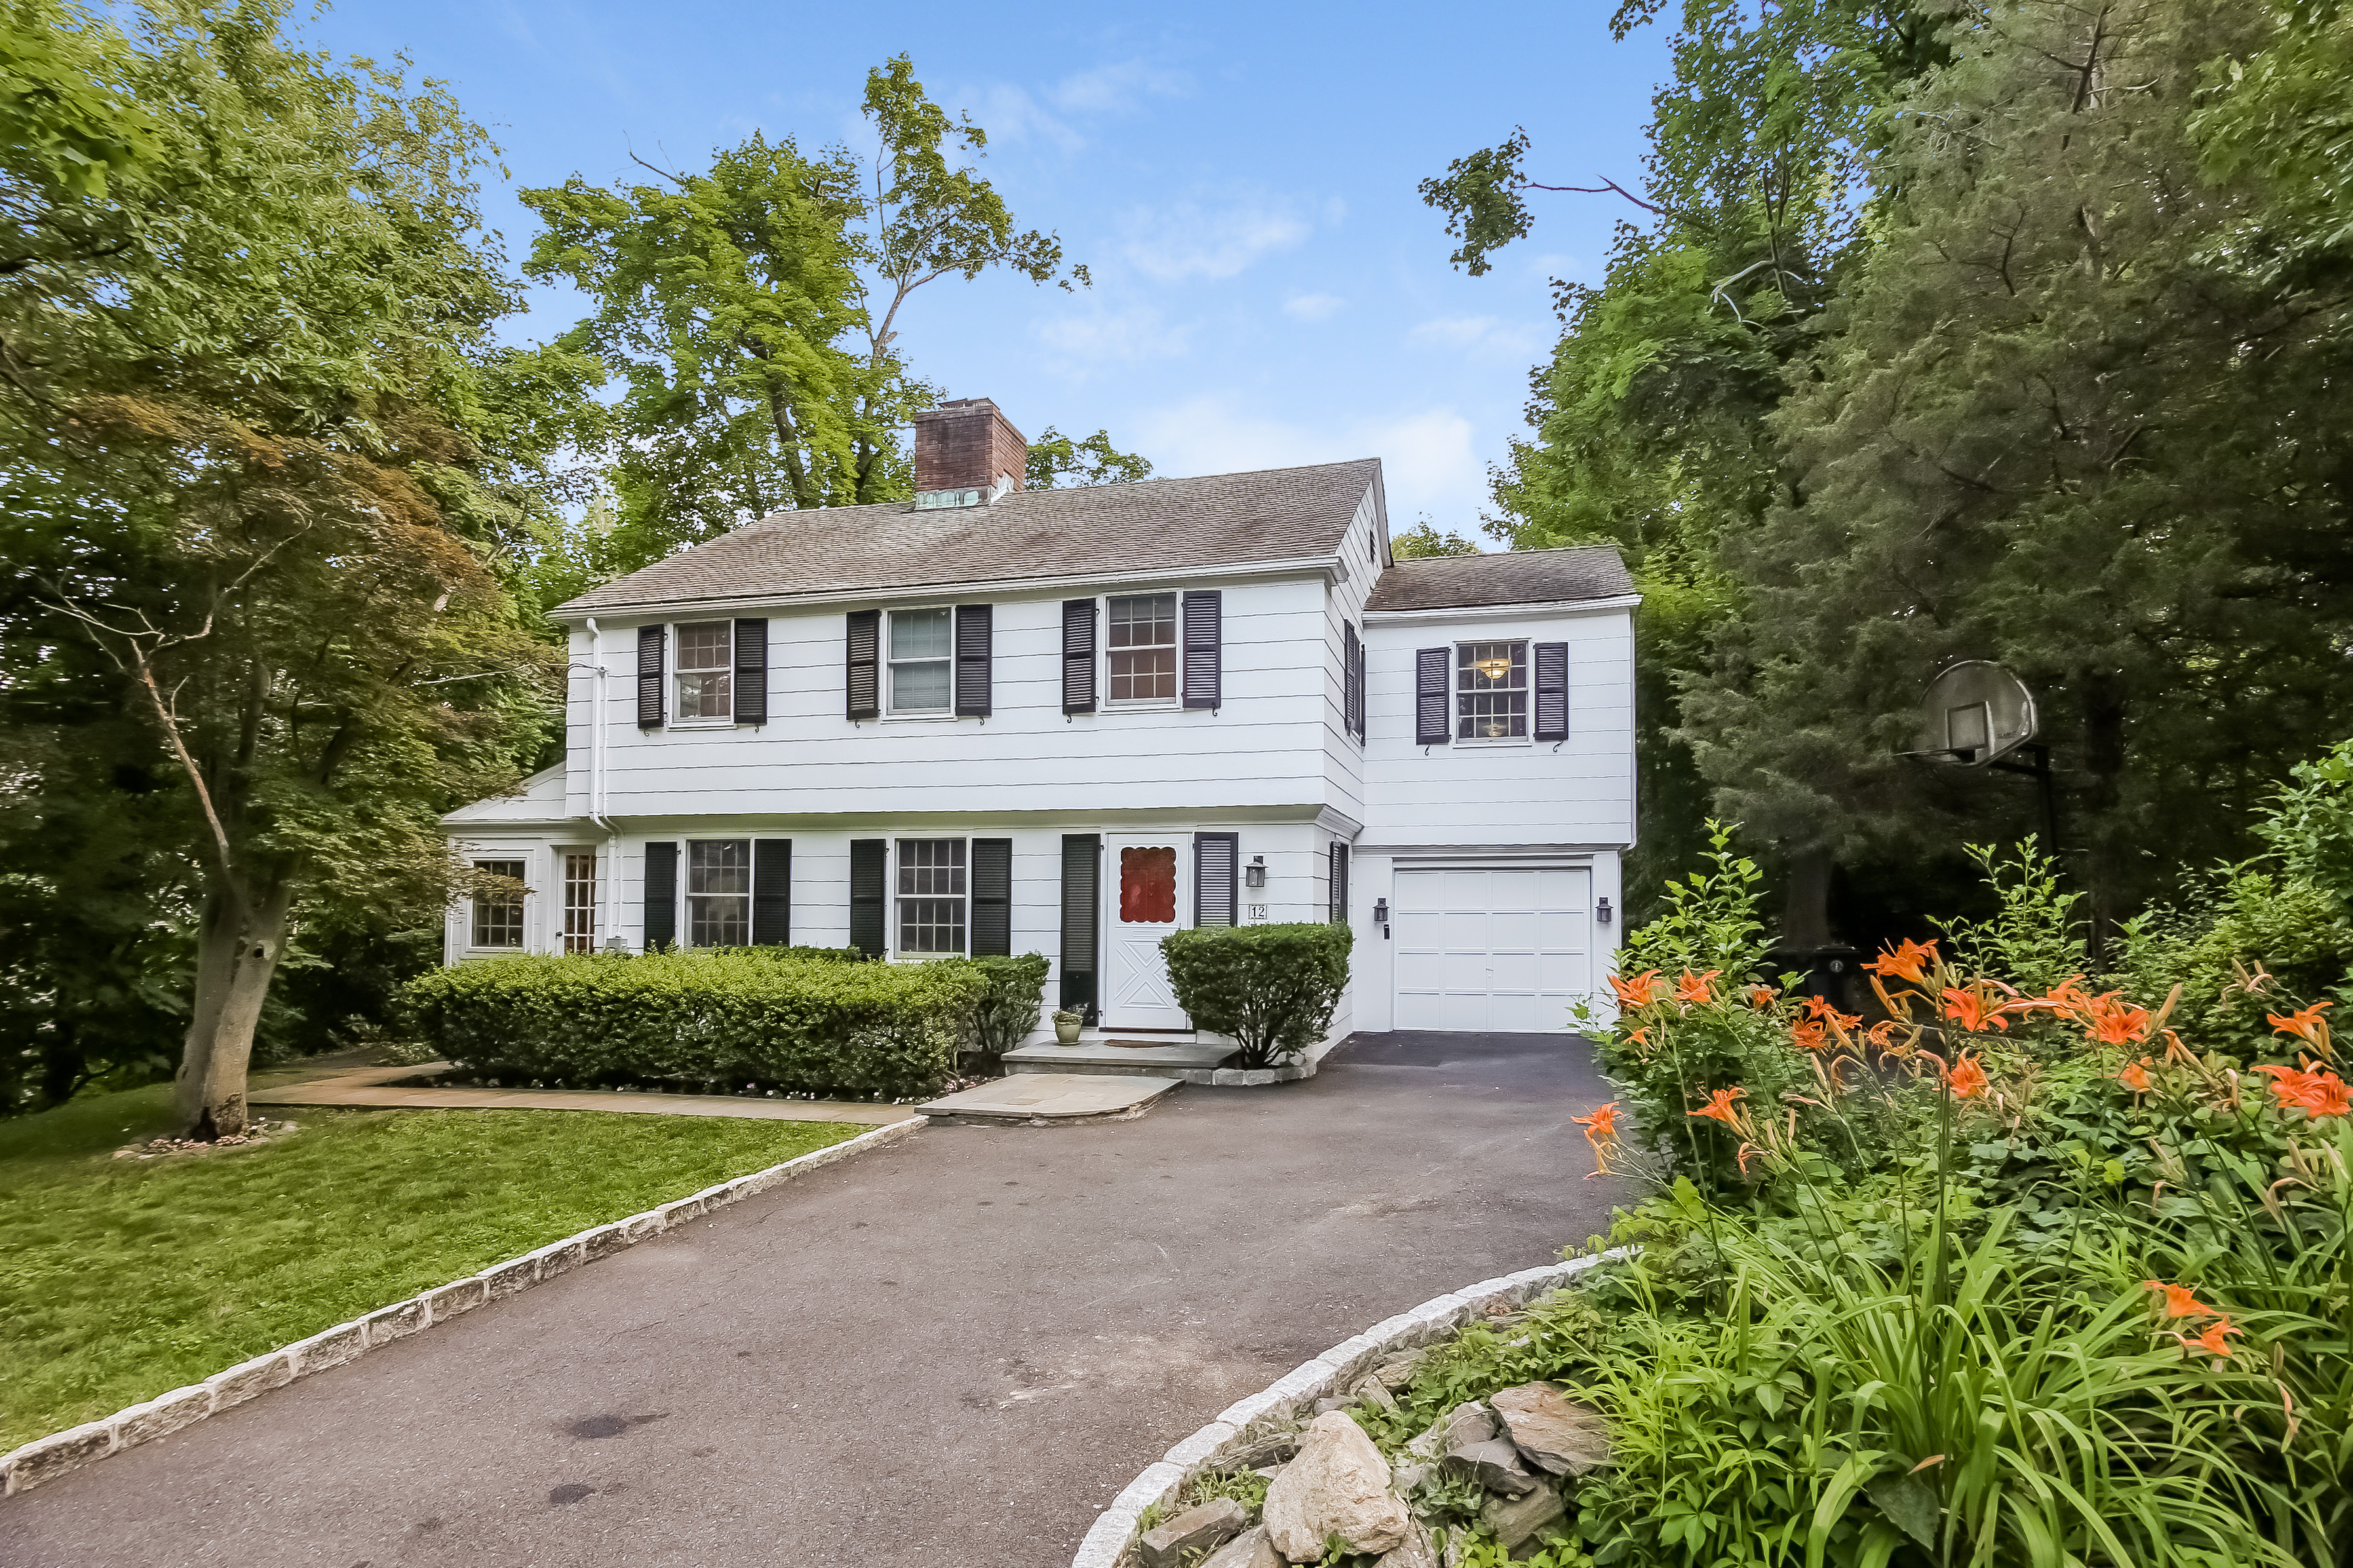 Single Family Home for Sale at Wonderfully Renovated Edgemont Colonial 12 Old Lane Scarsdale, New York 10583 United States